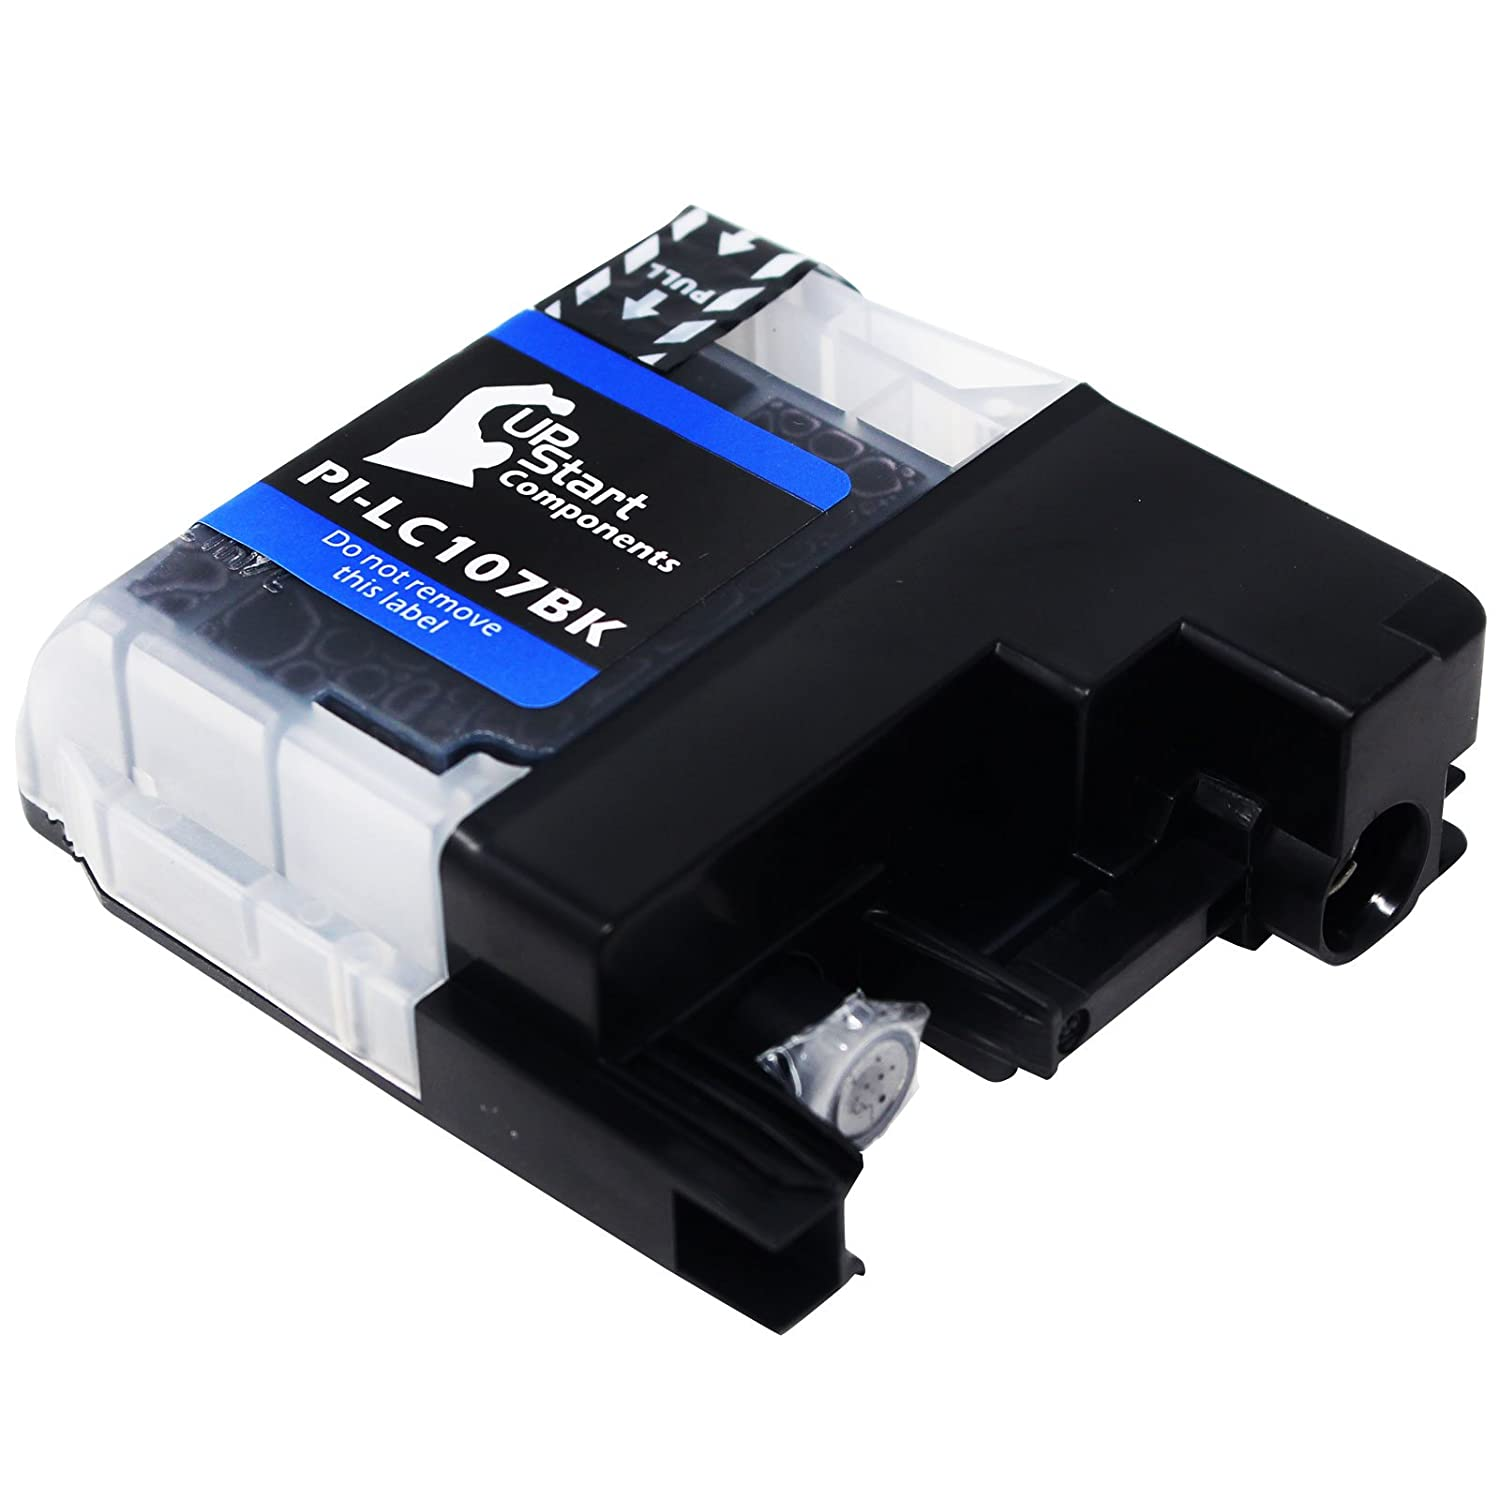 BROTHER MFC-J4510DW PRINTER DRIVERS FOR WINDOWS 7